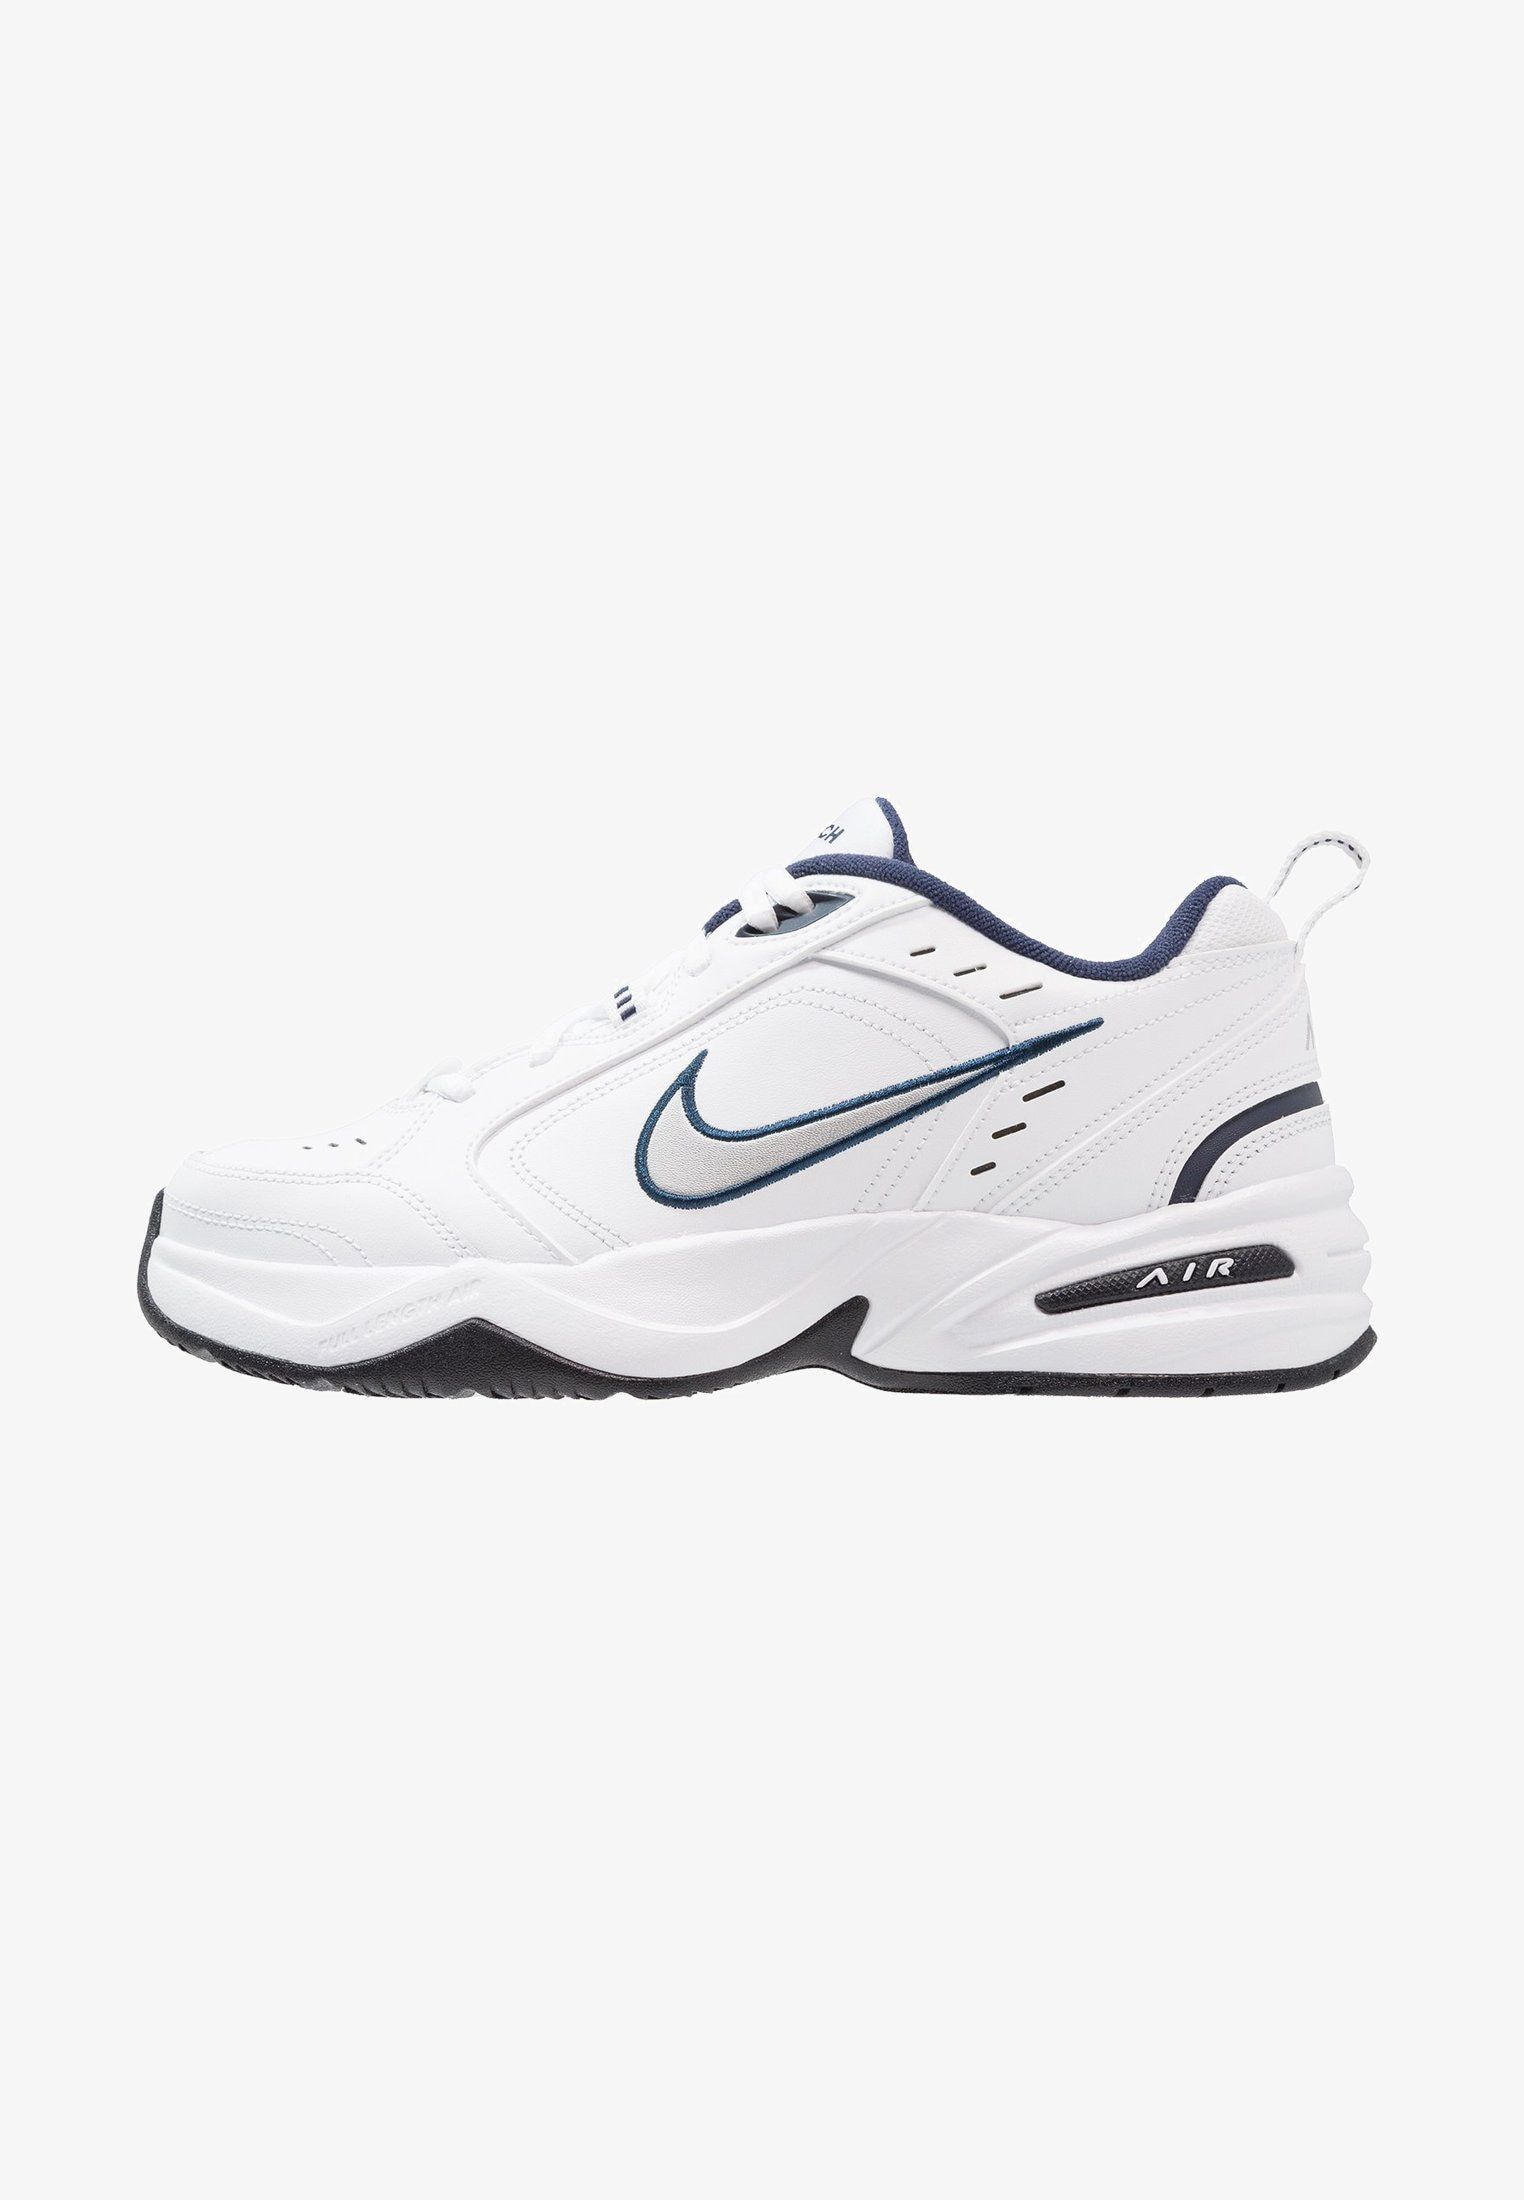 NIKE AIR MONARCH | Sko sneakers, Pæne sko, Sko